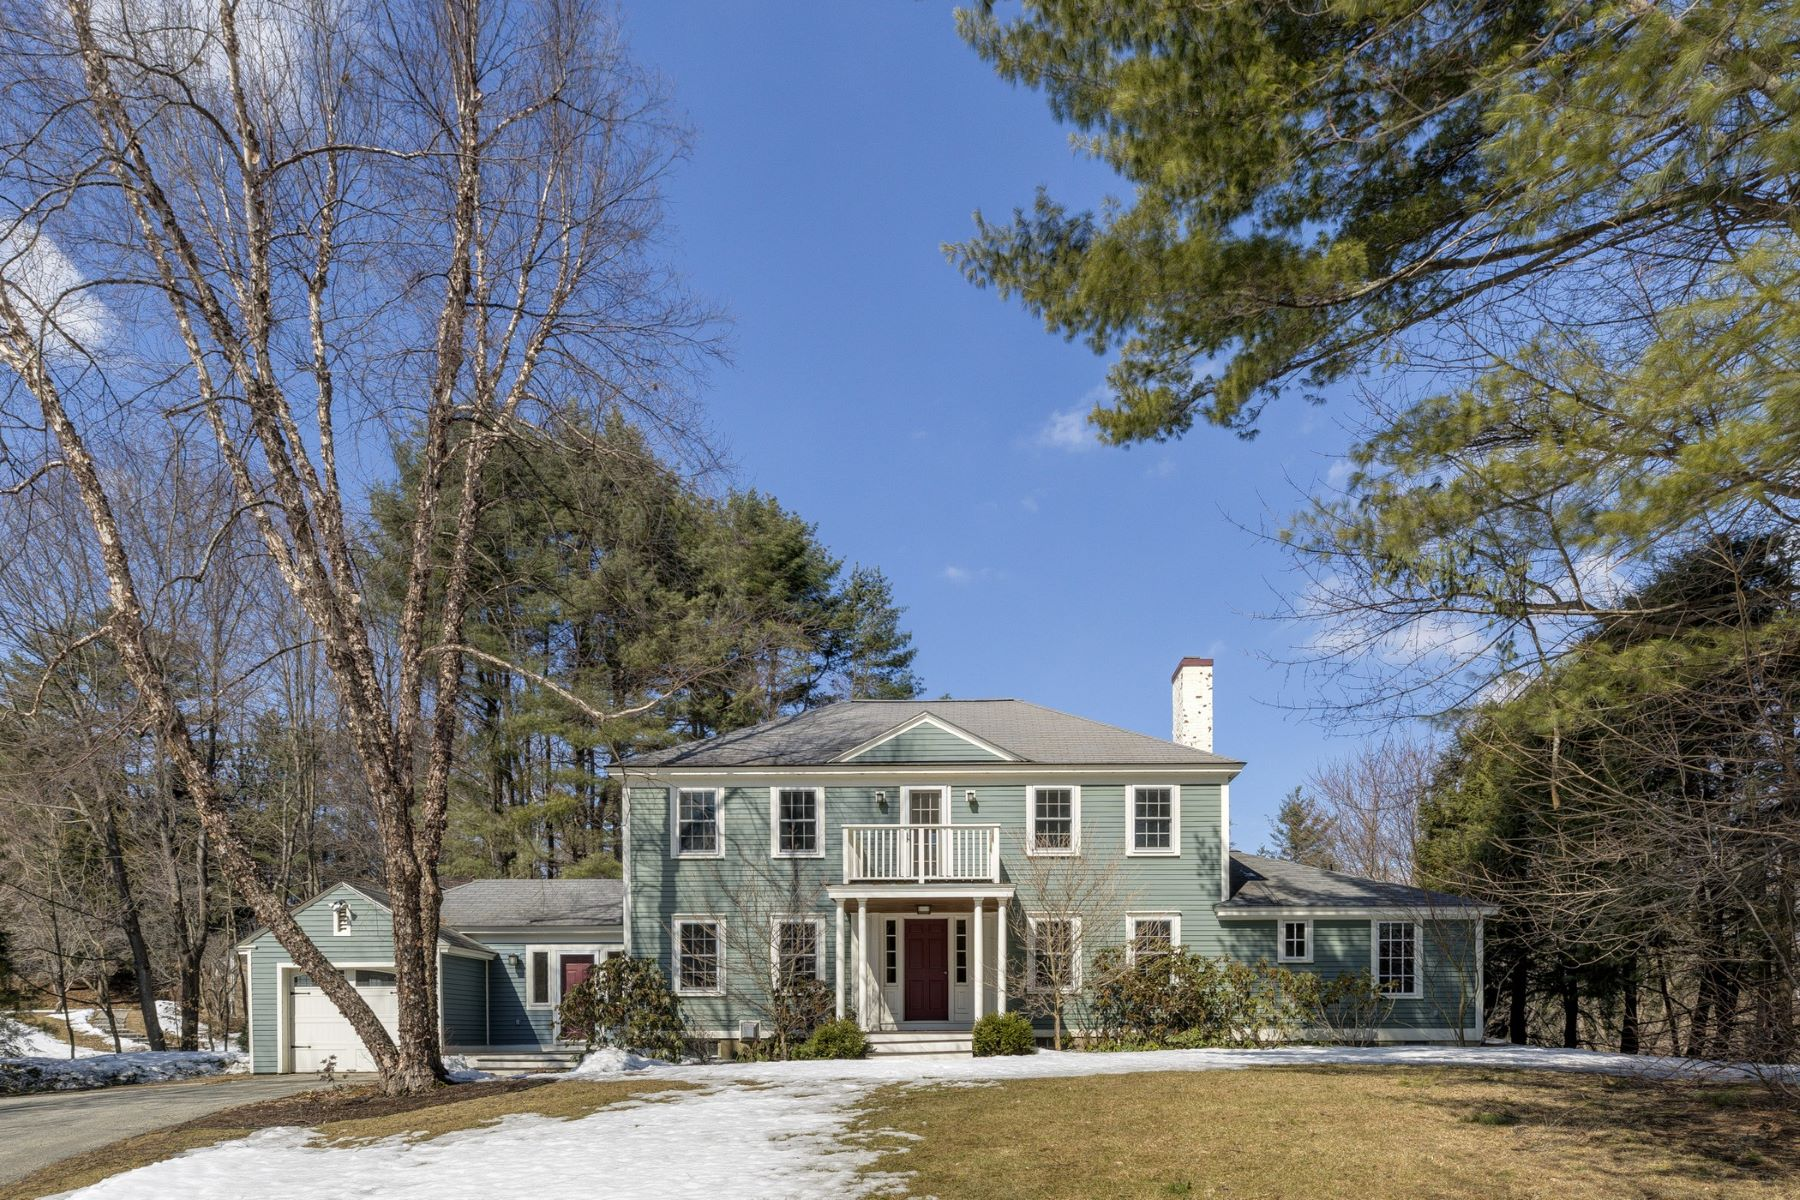 Single Family Home for Sale at 5 Wyeth Road, Hanover 5 Wyeth Rd Hanover, New Hampshire 03755 United States